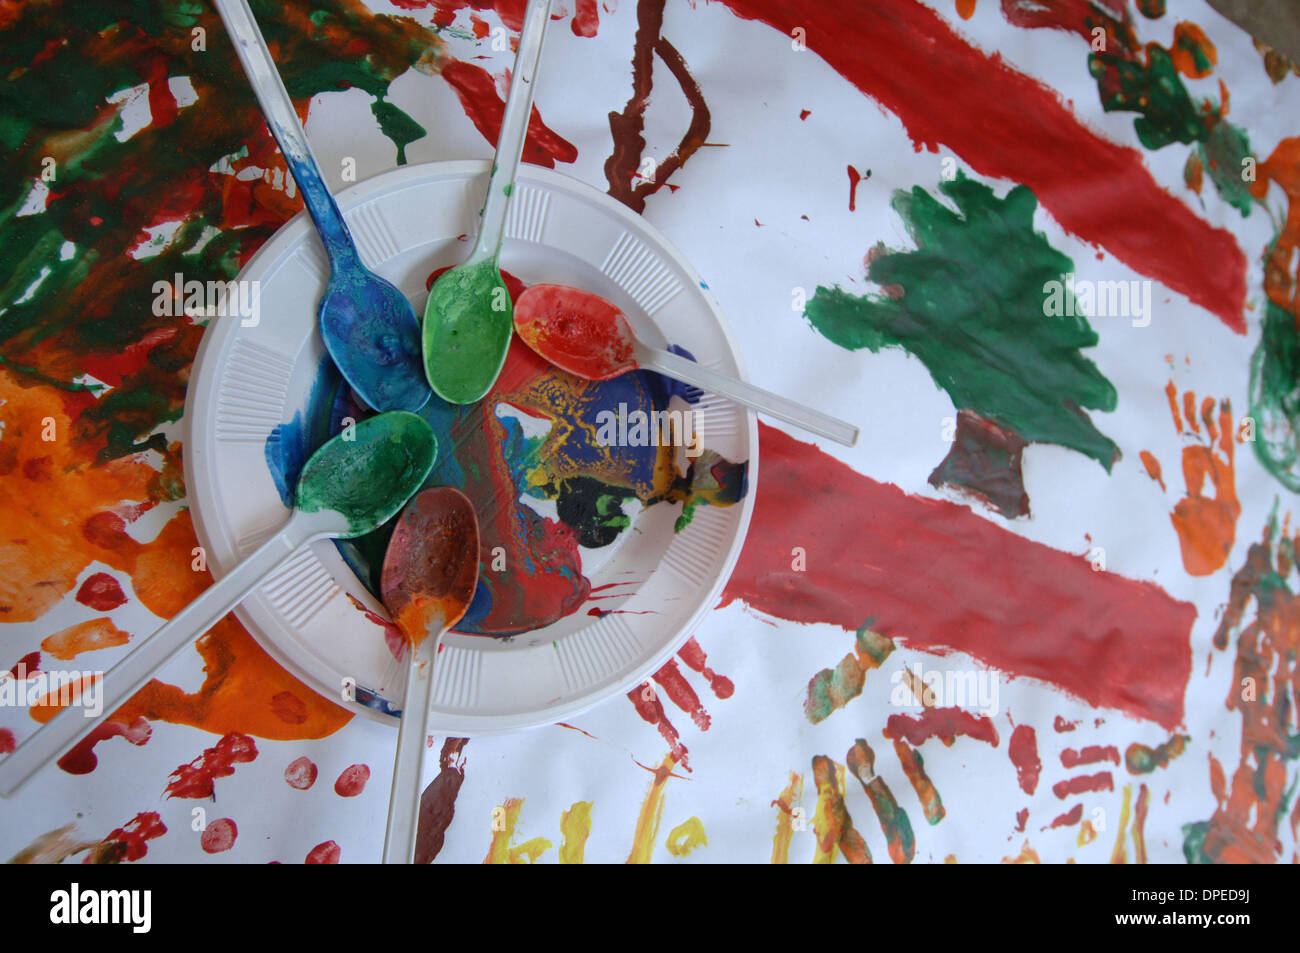 Sep 05, 2006 - Saida, Lebanon - A Lebanese flag that was hand painted by school children as part of a summer camp - Stock Image